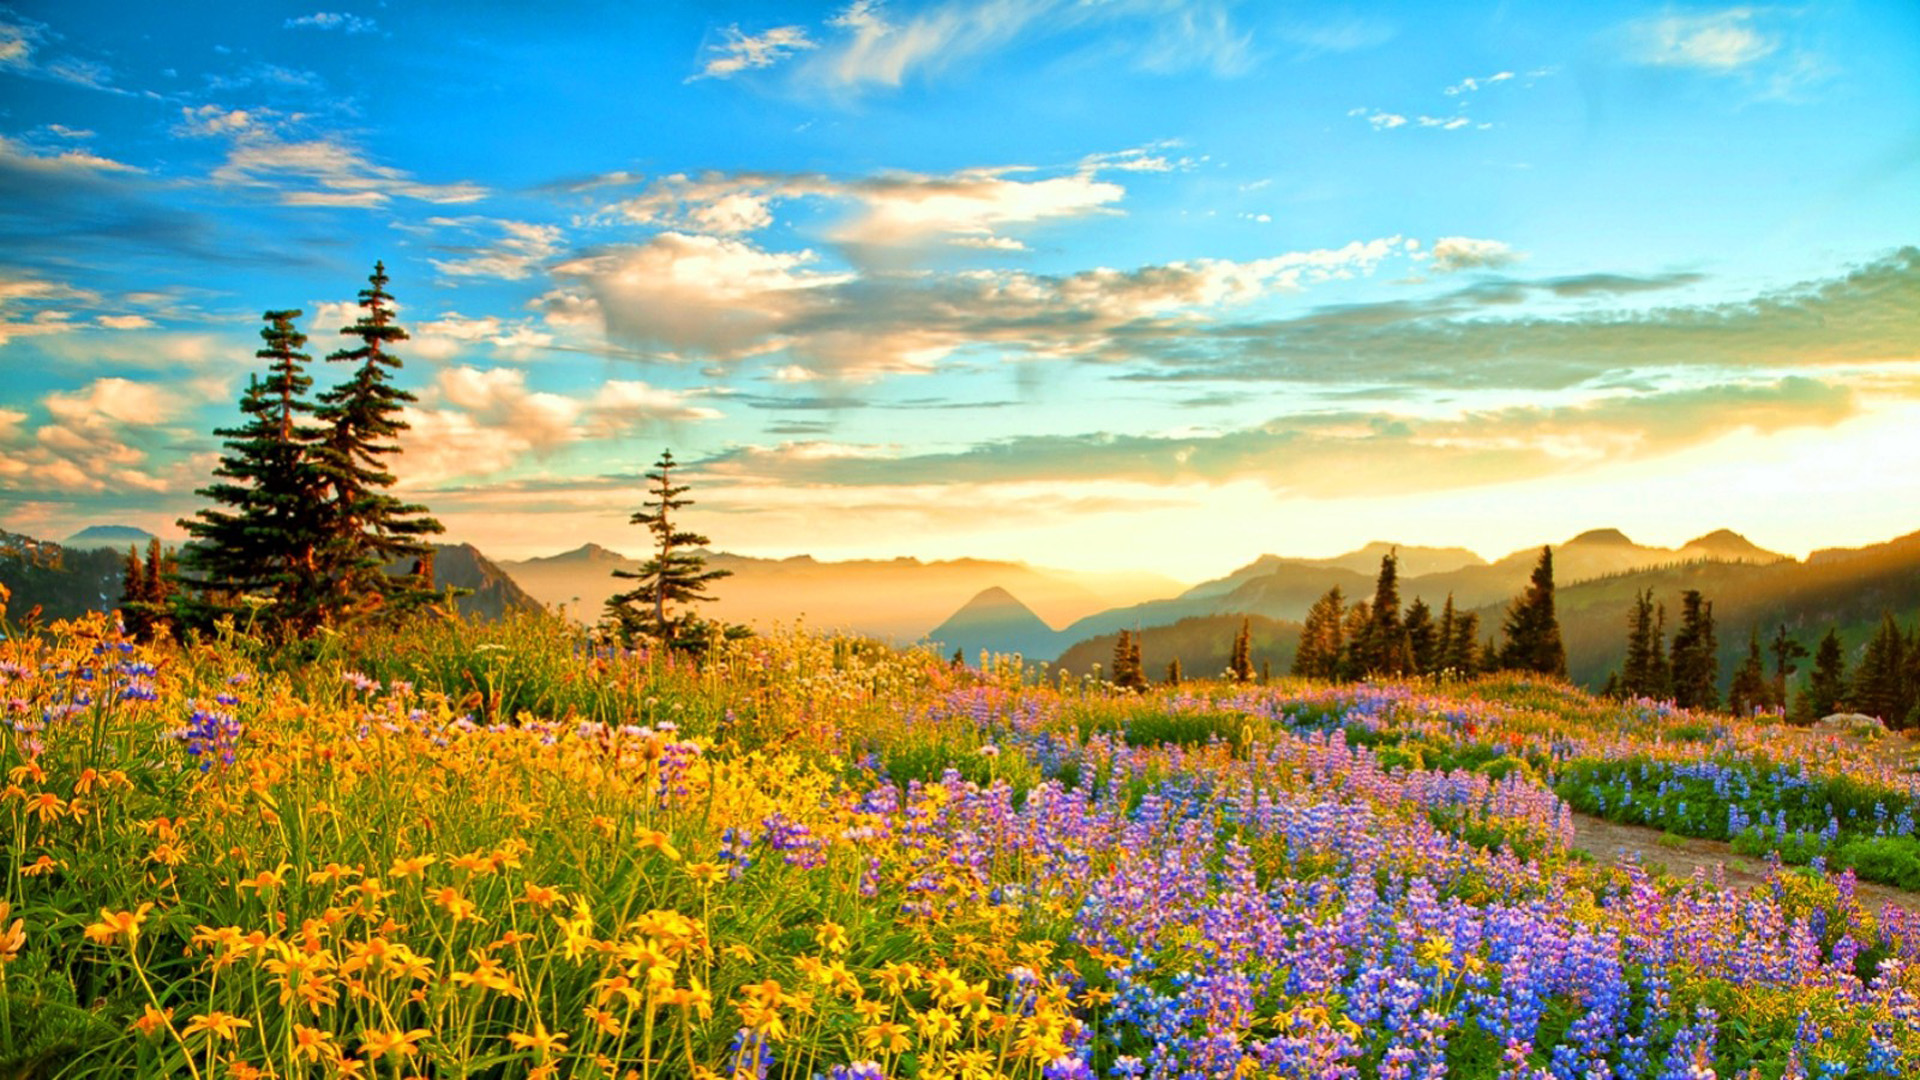 Fall Scenery Wallpapers Free Sunset Mountain Wilderness France Spring Mountain Flowers